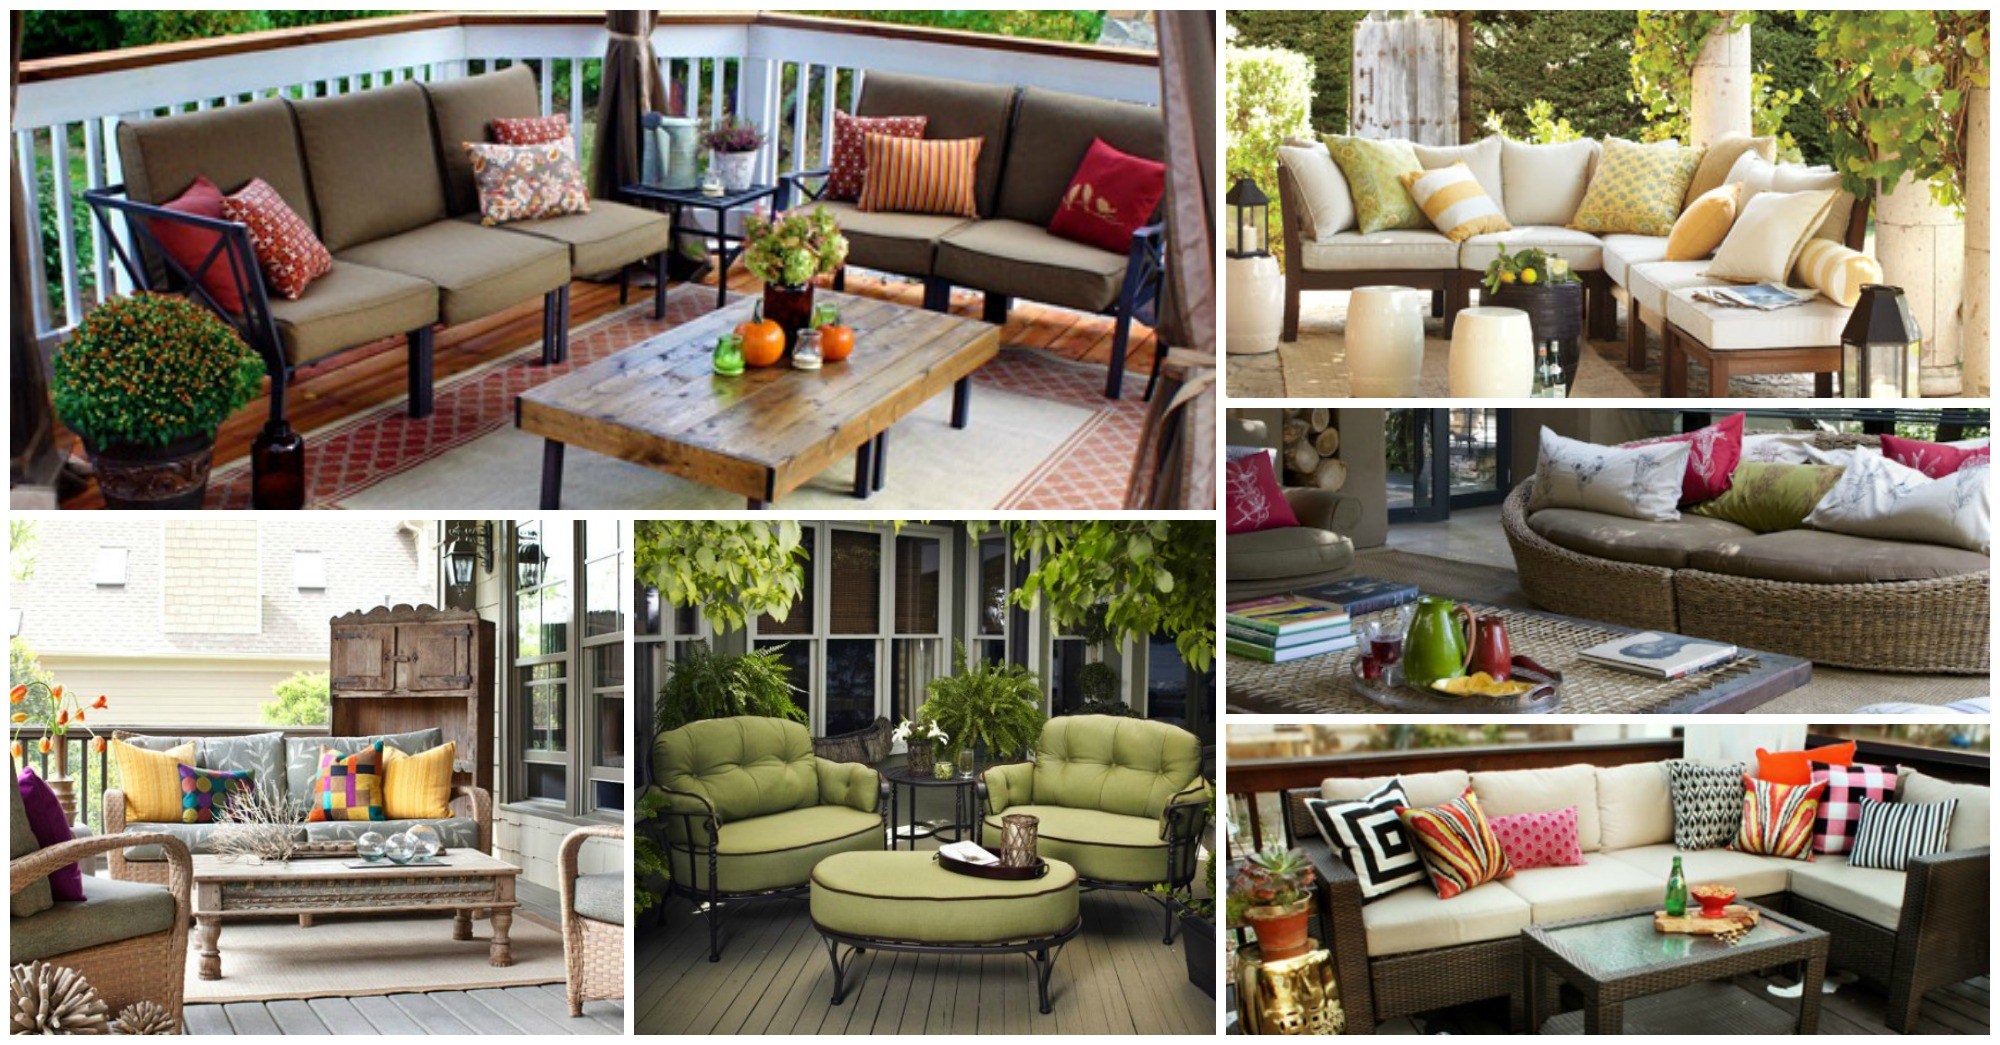 10 Patio Furniture Designs to Turn Your Yard into Relaxing Space